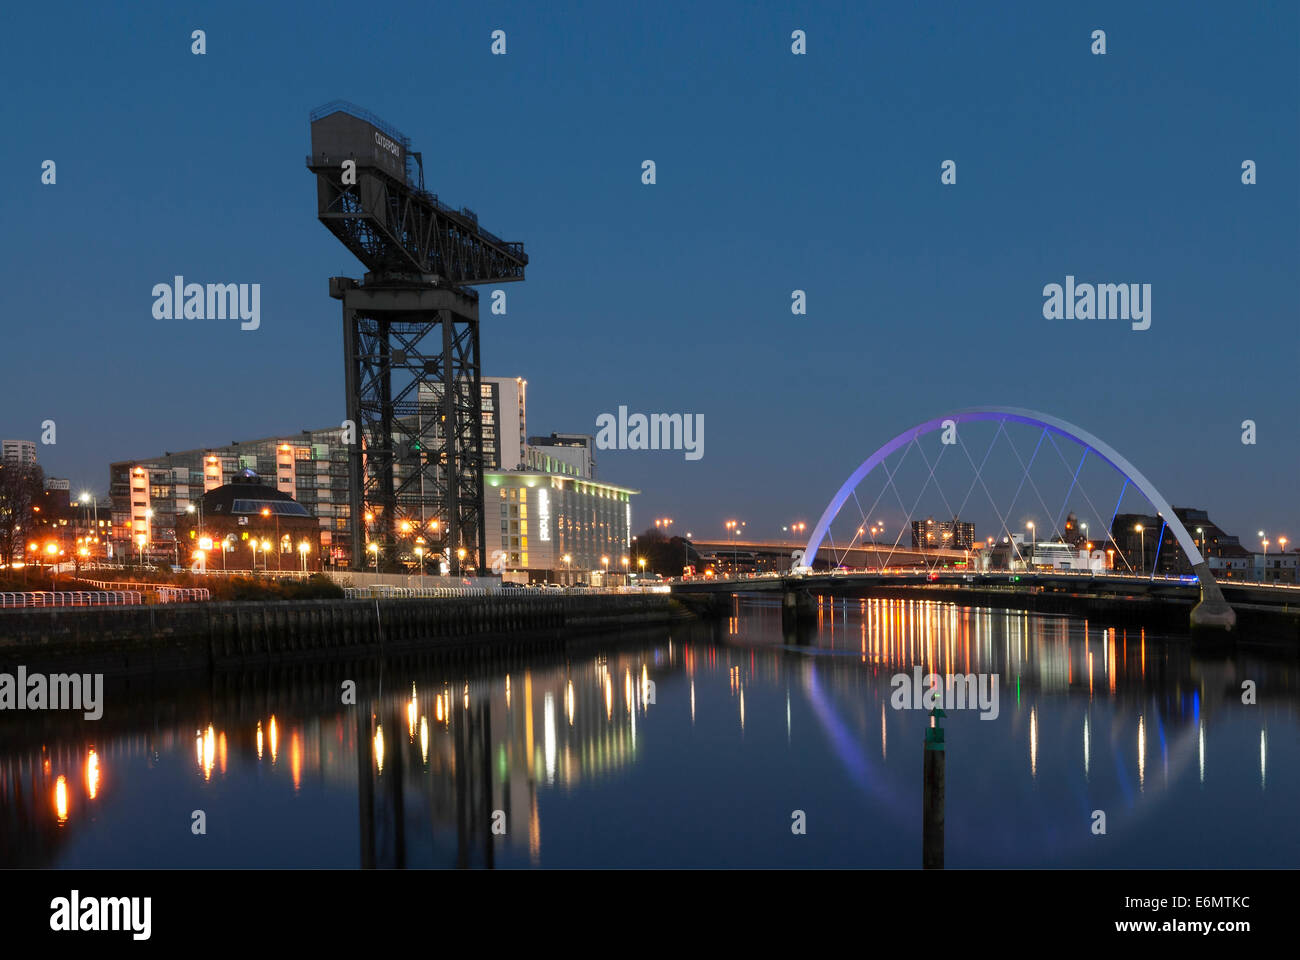 Night photograph of the River Clyde with the Finnieston Crane and  Clyde Arc Bridge (Squinty Bridge) Glasgow. - Stock Image